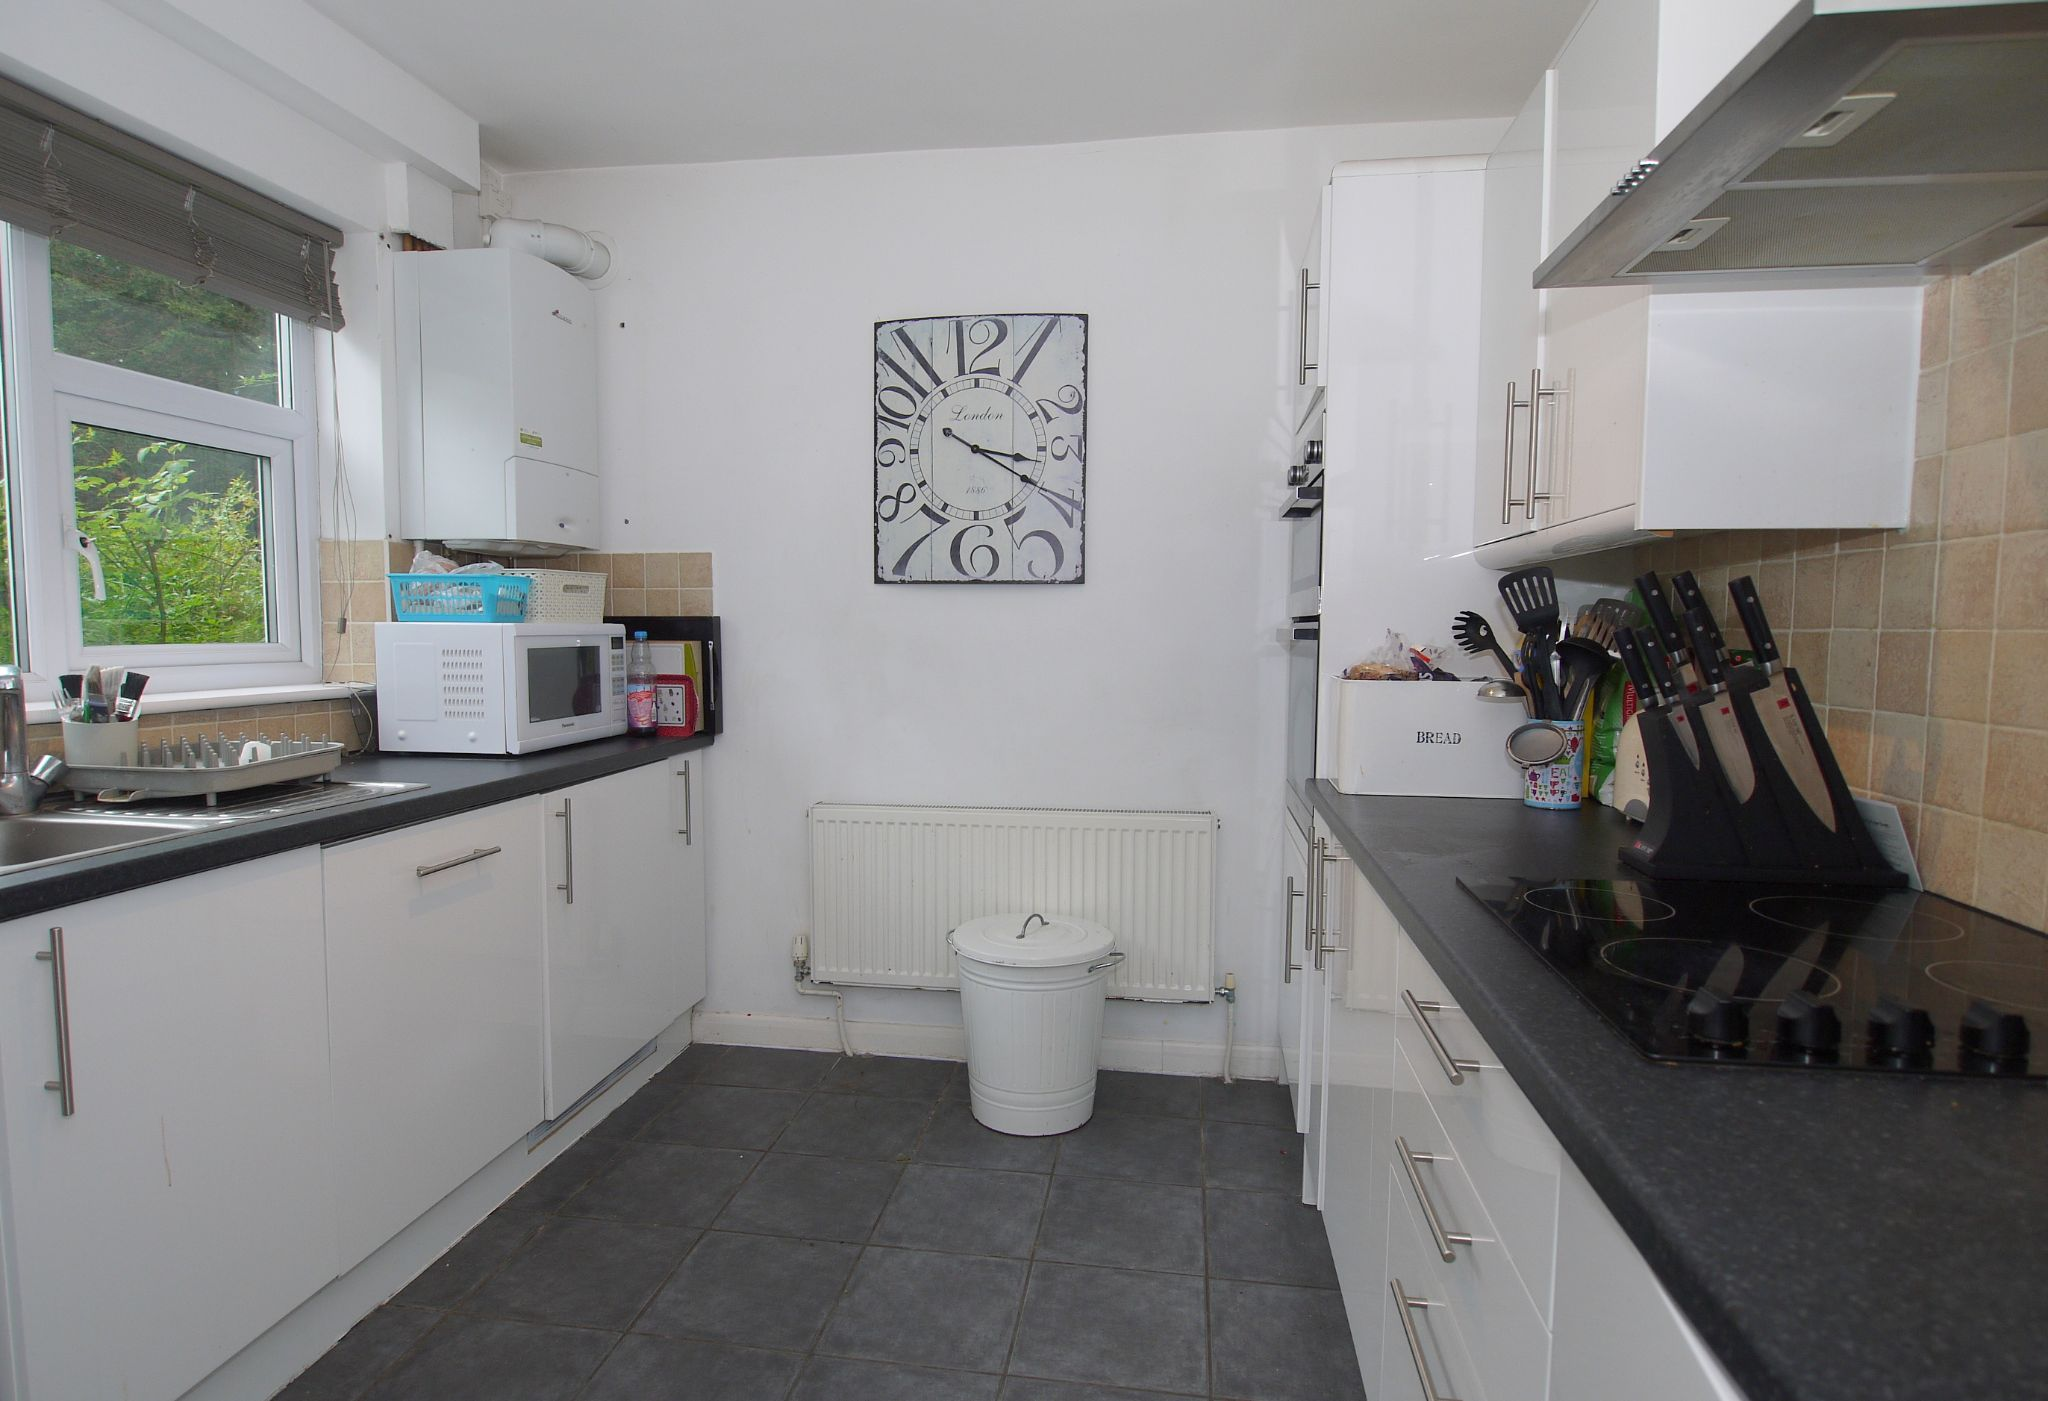 3 bedroom apartment flat/apartment Sale Agreed in Sevenoaks - Photograph 4